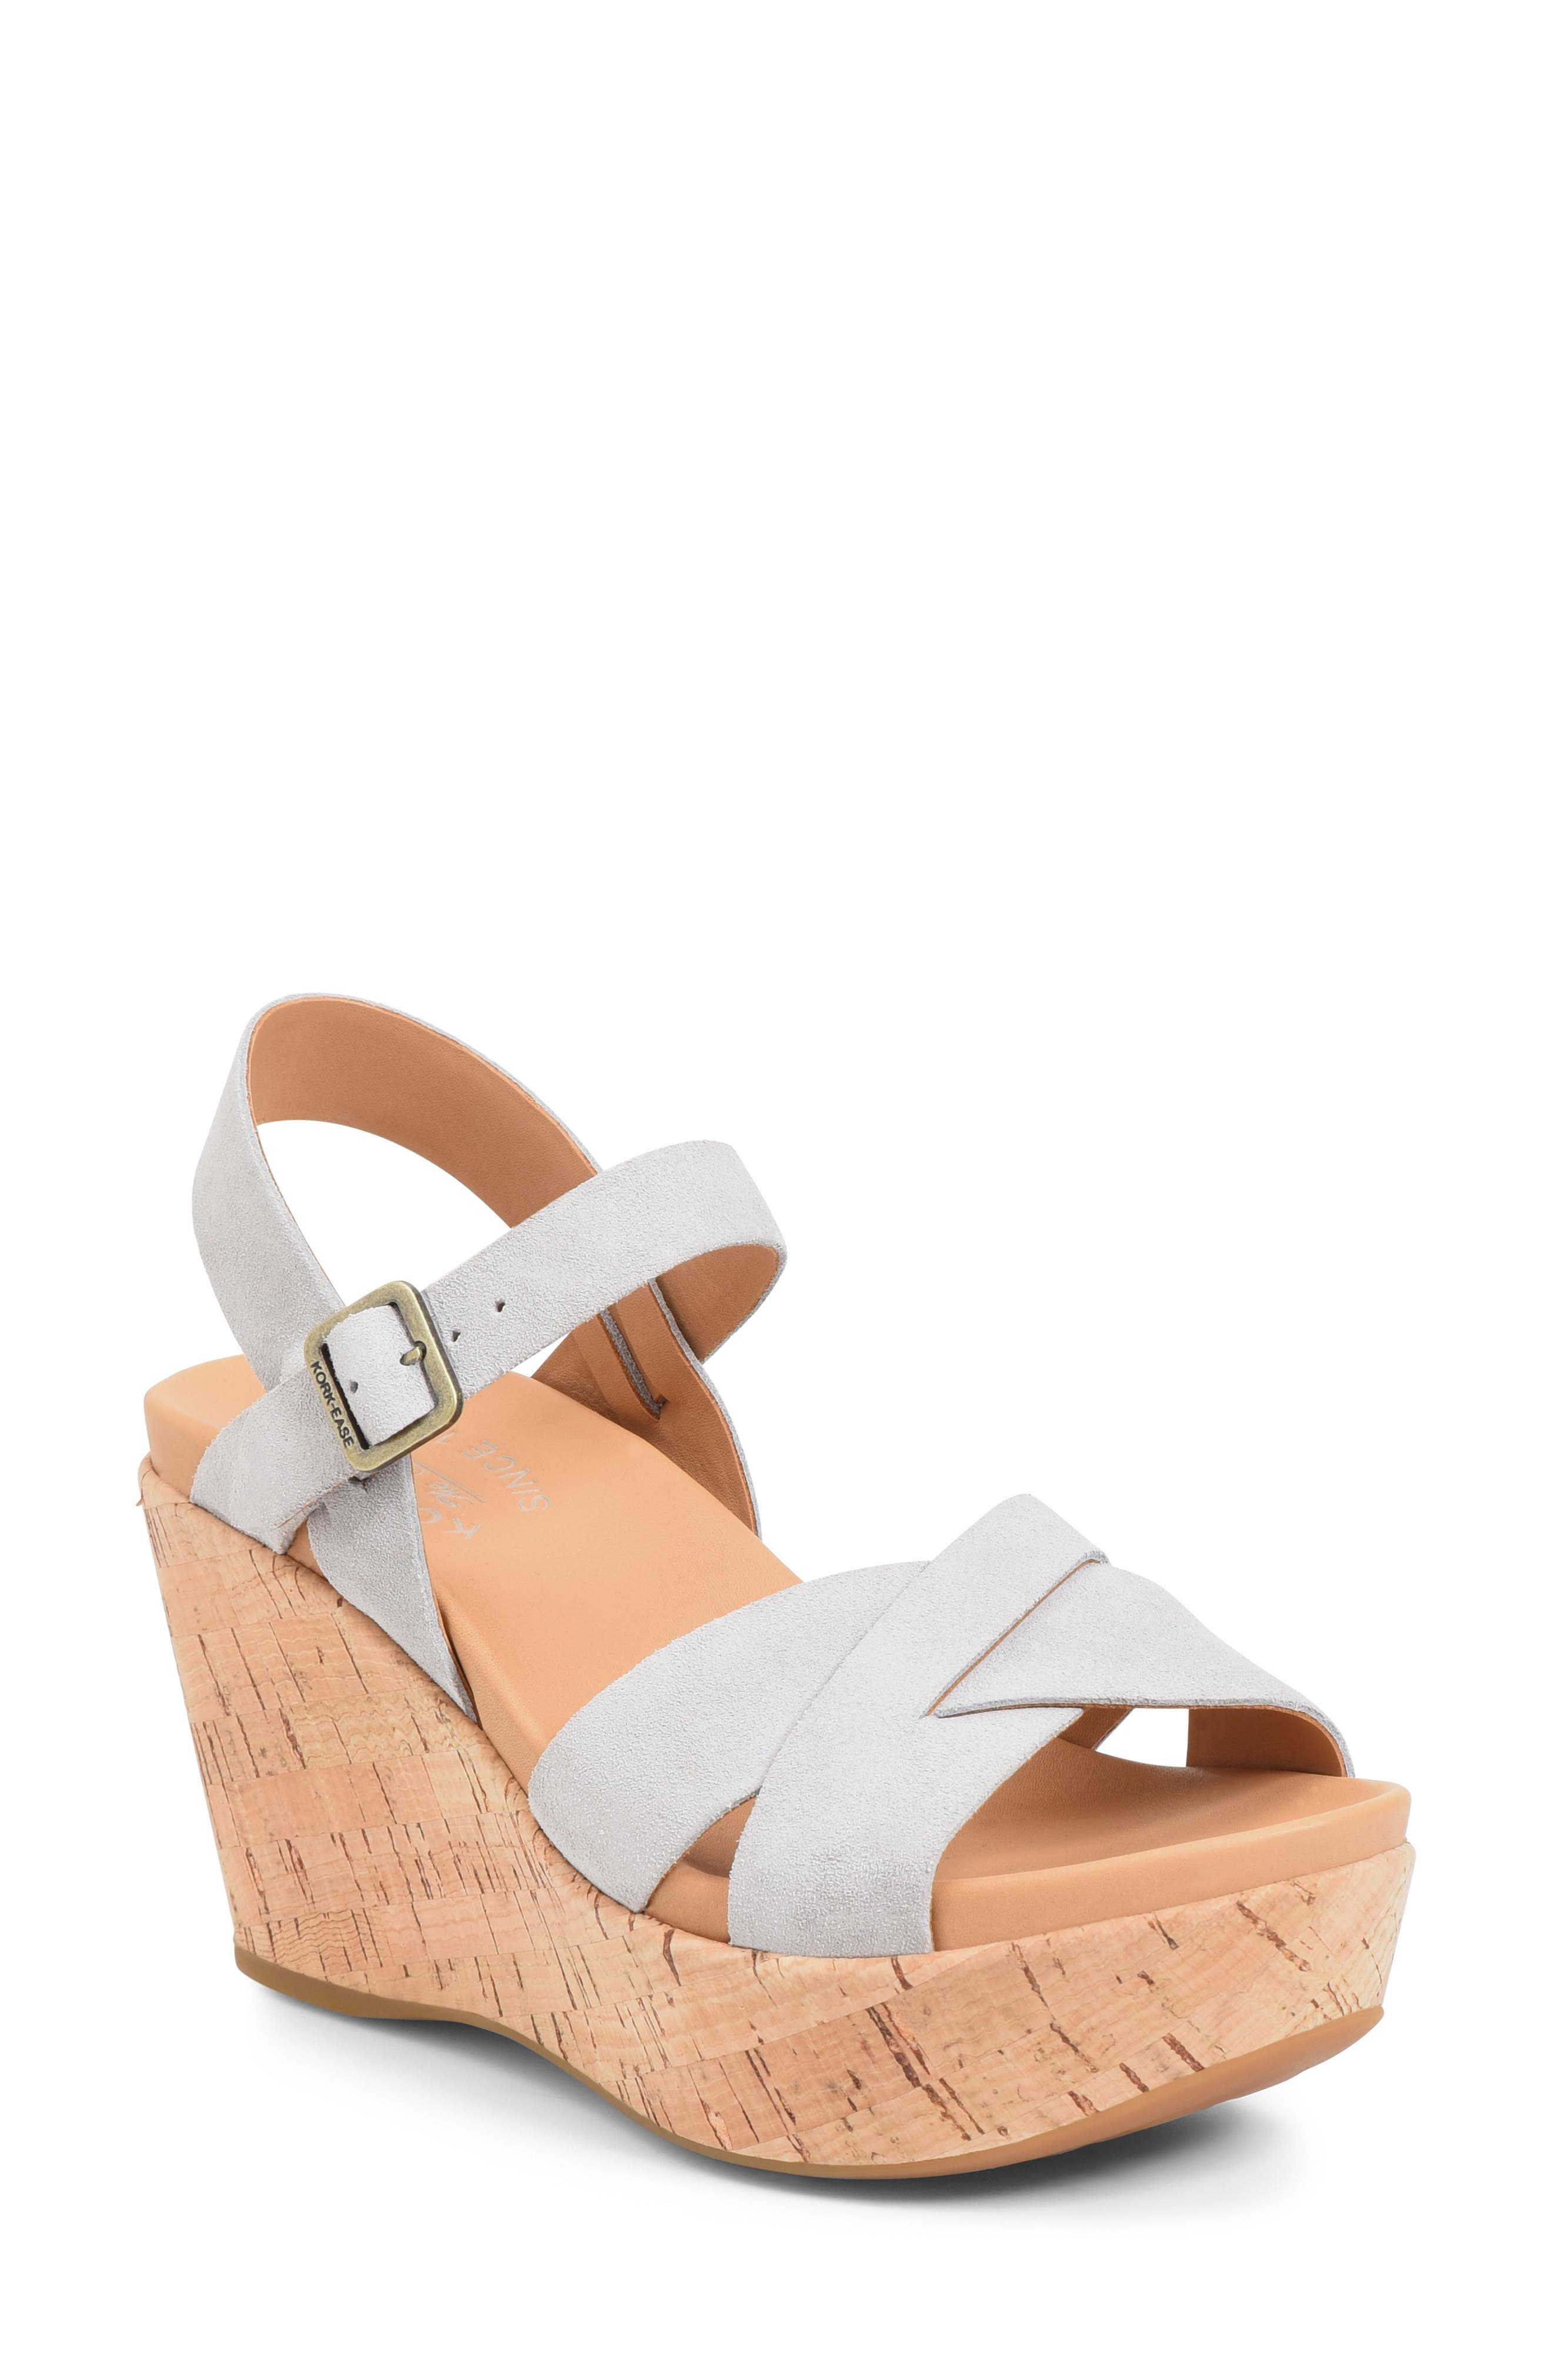 A standby comfort sandal takes a retro-chic turn with a bold platform wedge and sleek, interwoven leather straps. Style Name: Kork-Ease \\\'Ava 2.0\\\' Platform Wedge Sandal (Women). Style Number: 1024958. Available in stores.